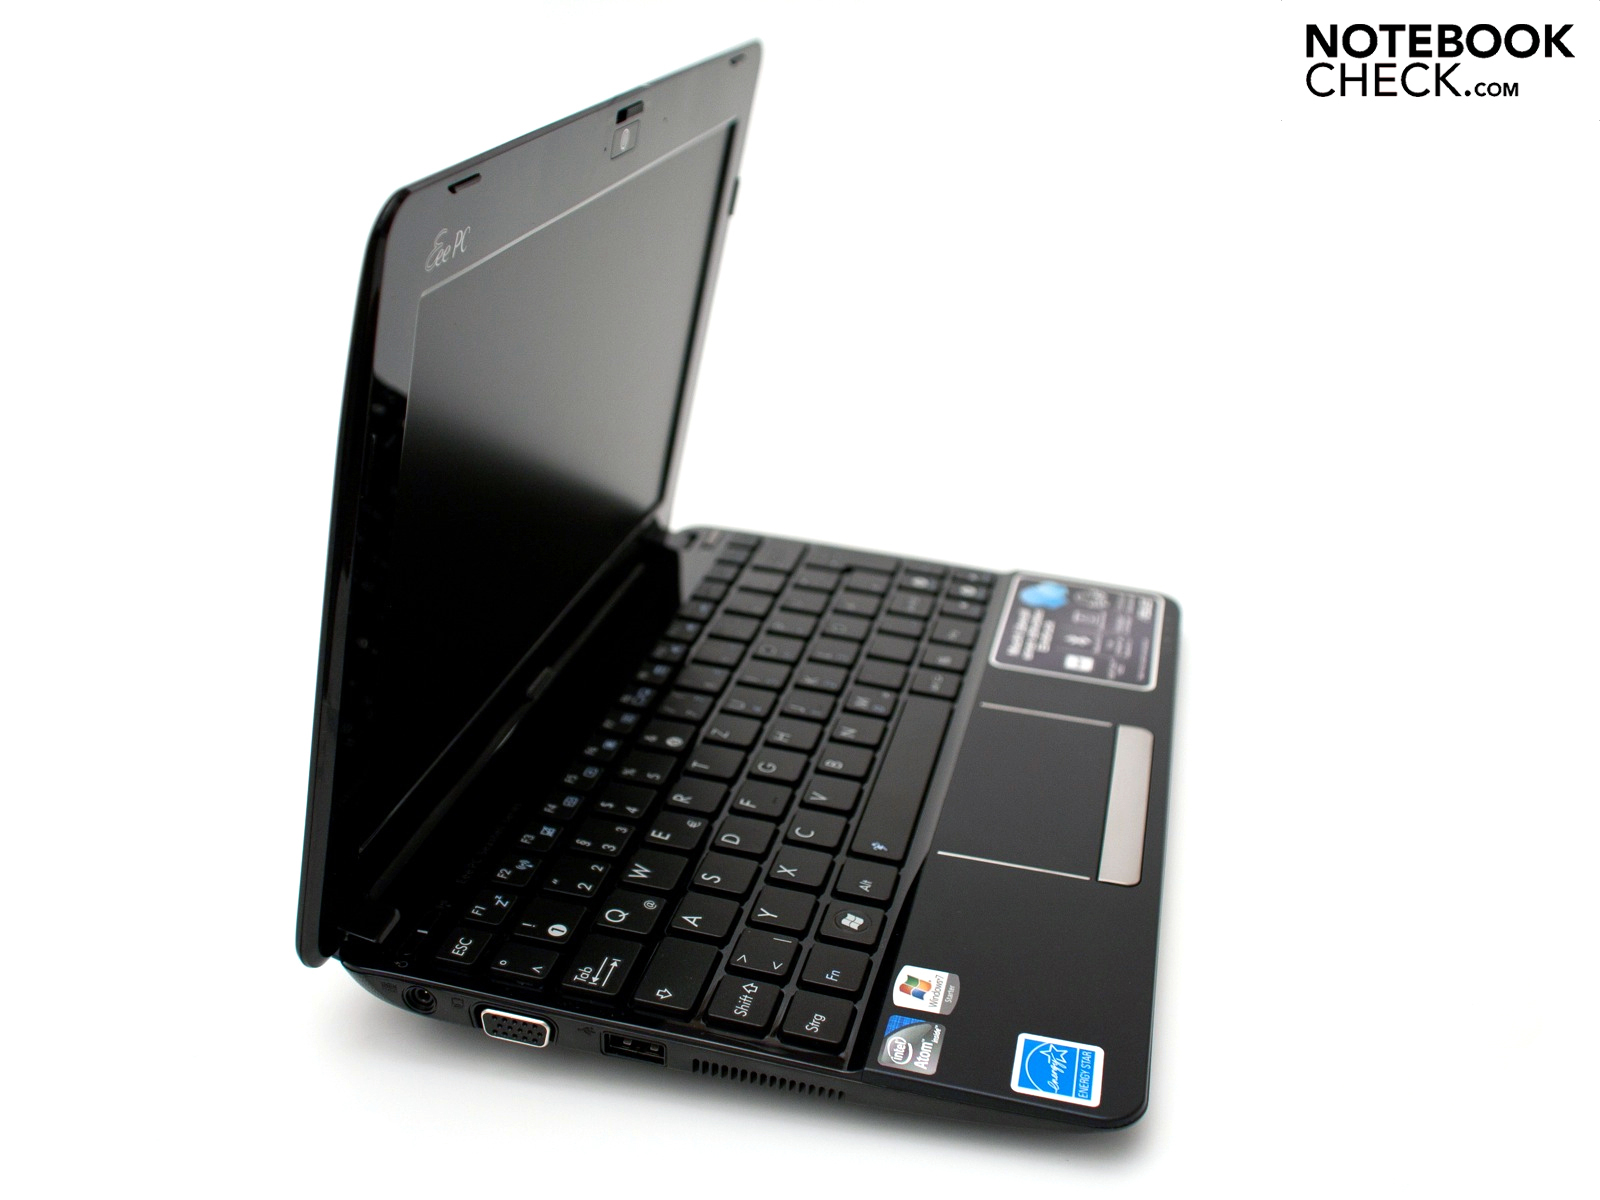 Asus Eee PC 1015PEM Netbook Fingerprint Vista